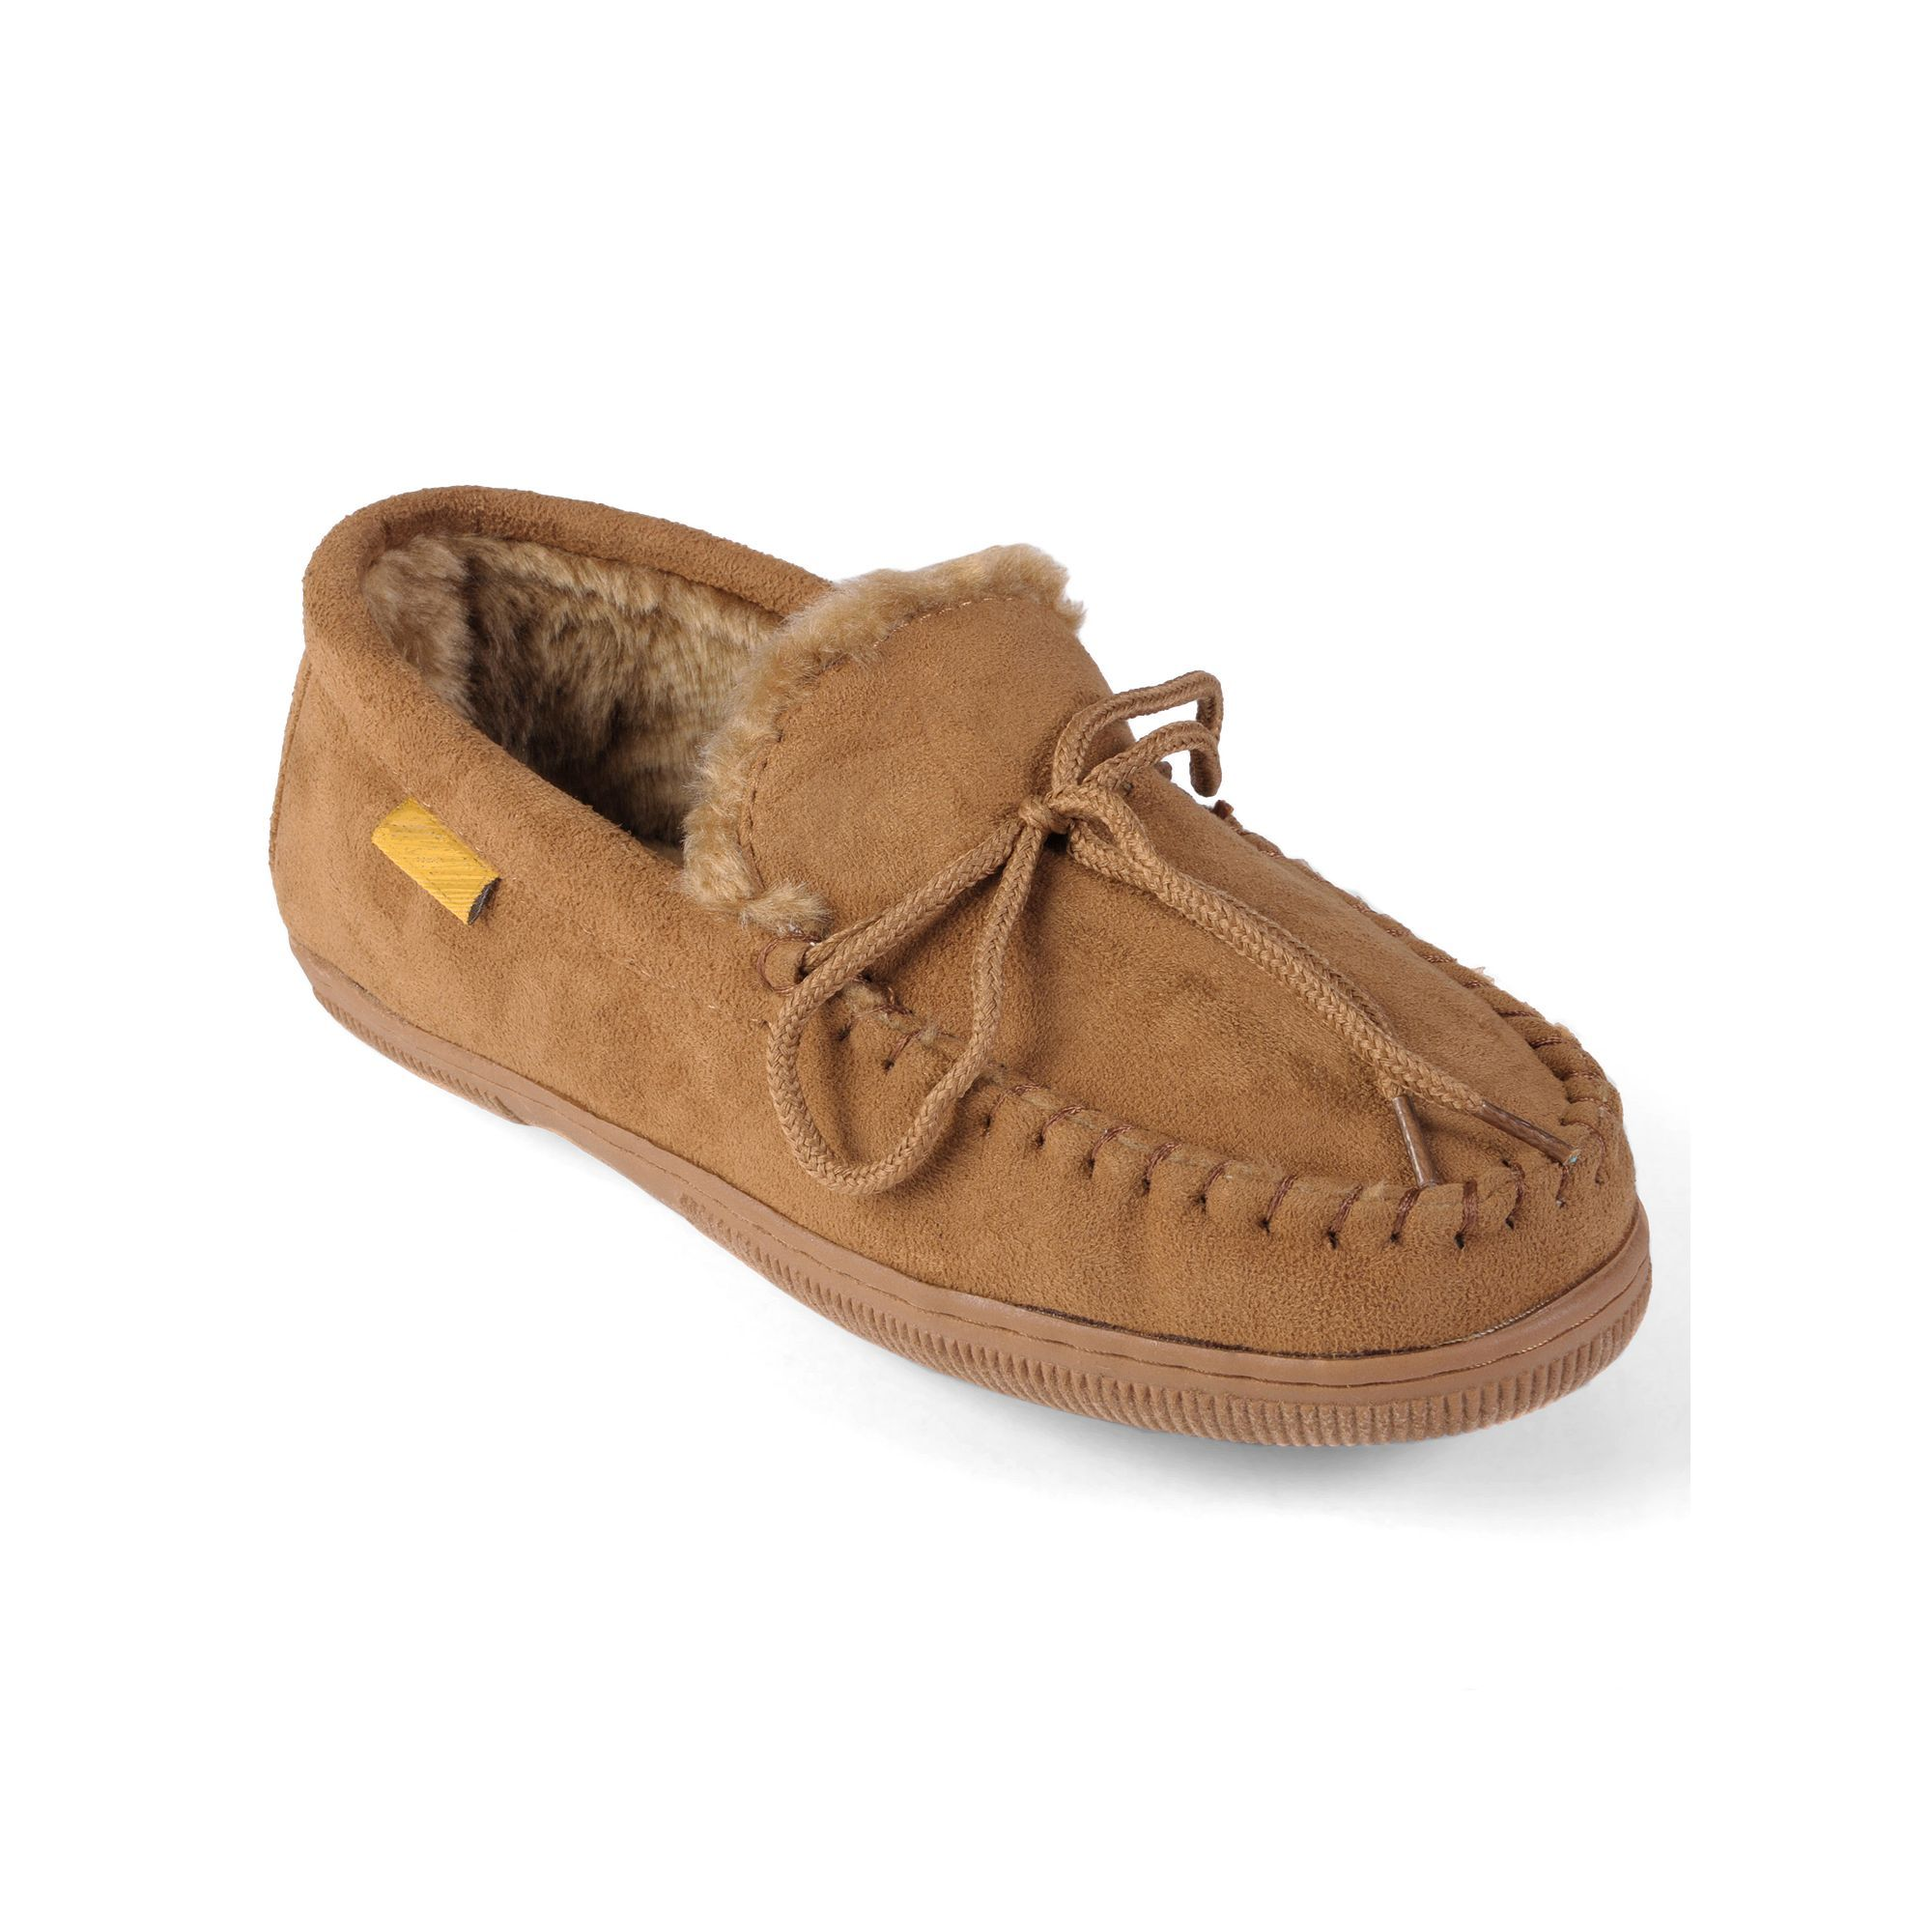 Oxford and Finch Men's ... Moccasin Slippers clearance outlet SsA2aHt6xY